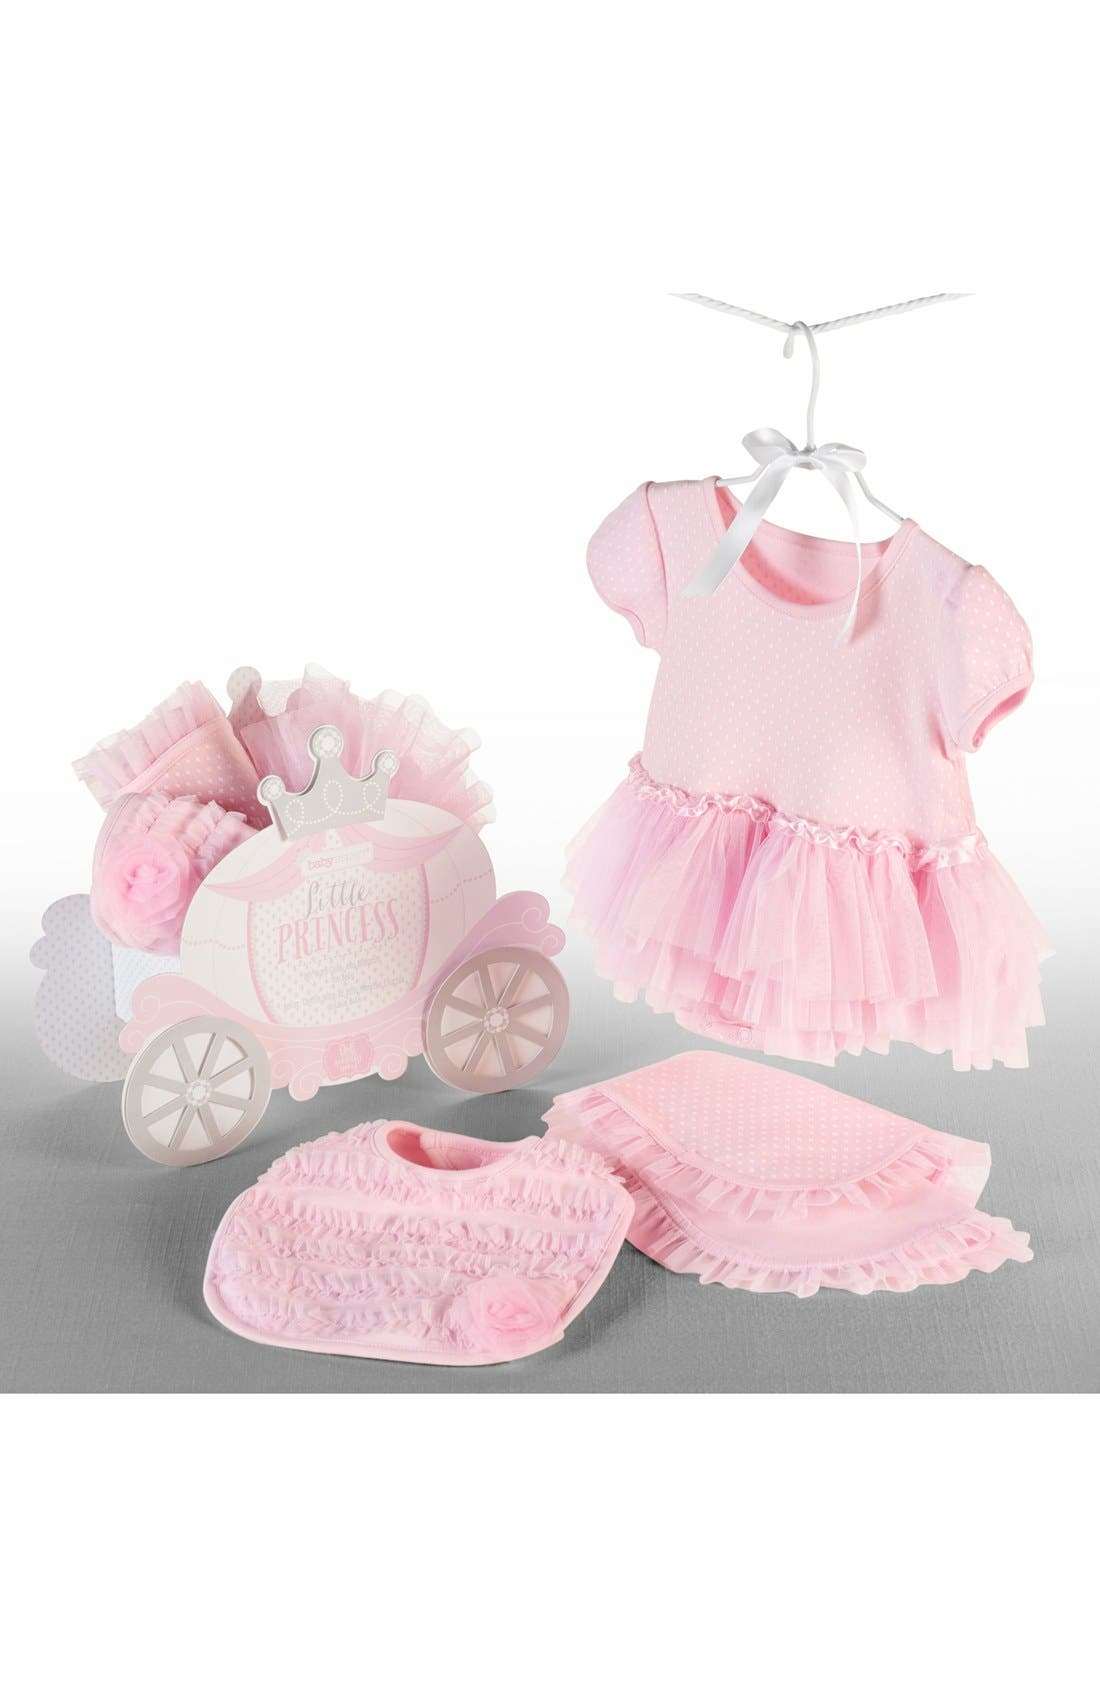 Baby Aspen Little Princess 3-Piece Gift Set (Baby Girls)